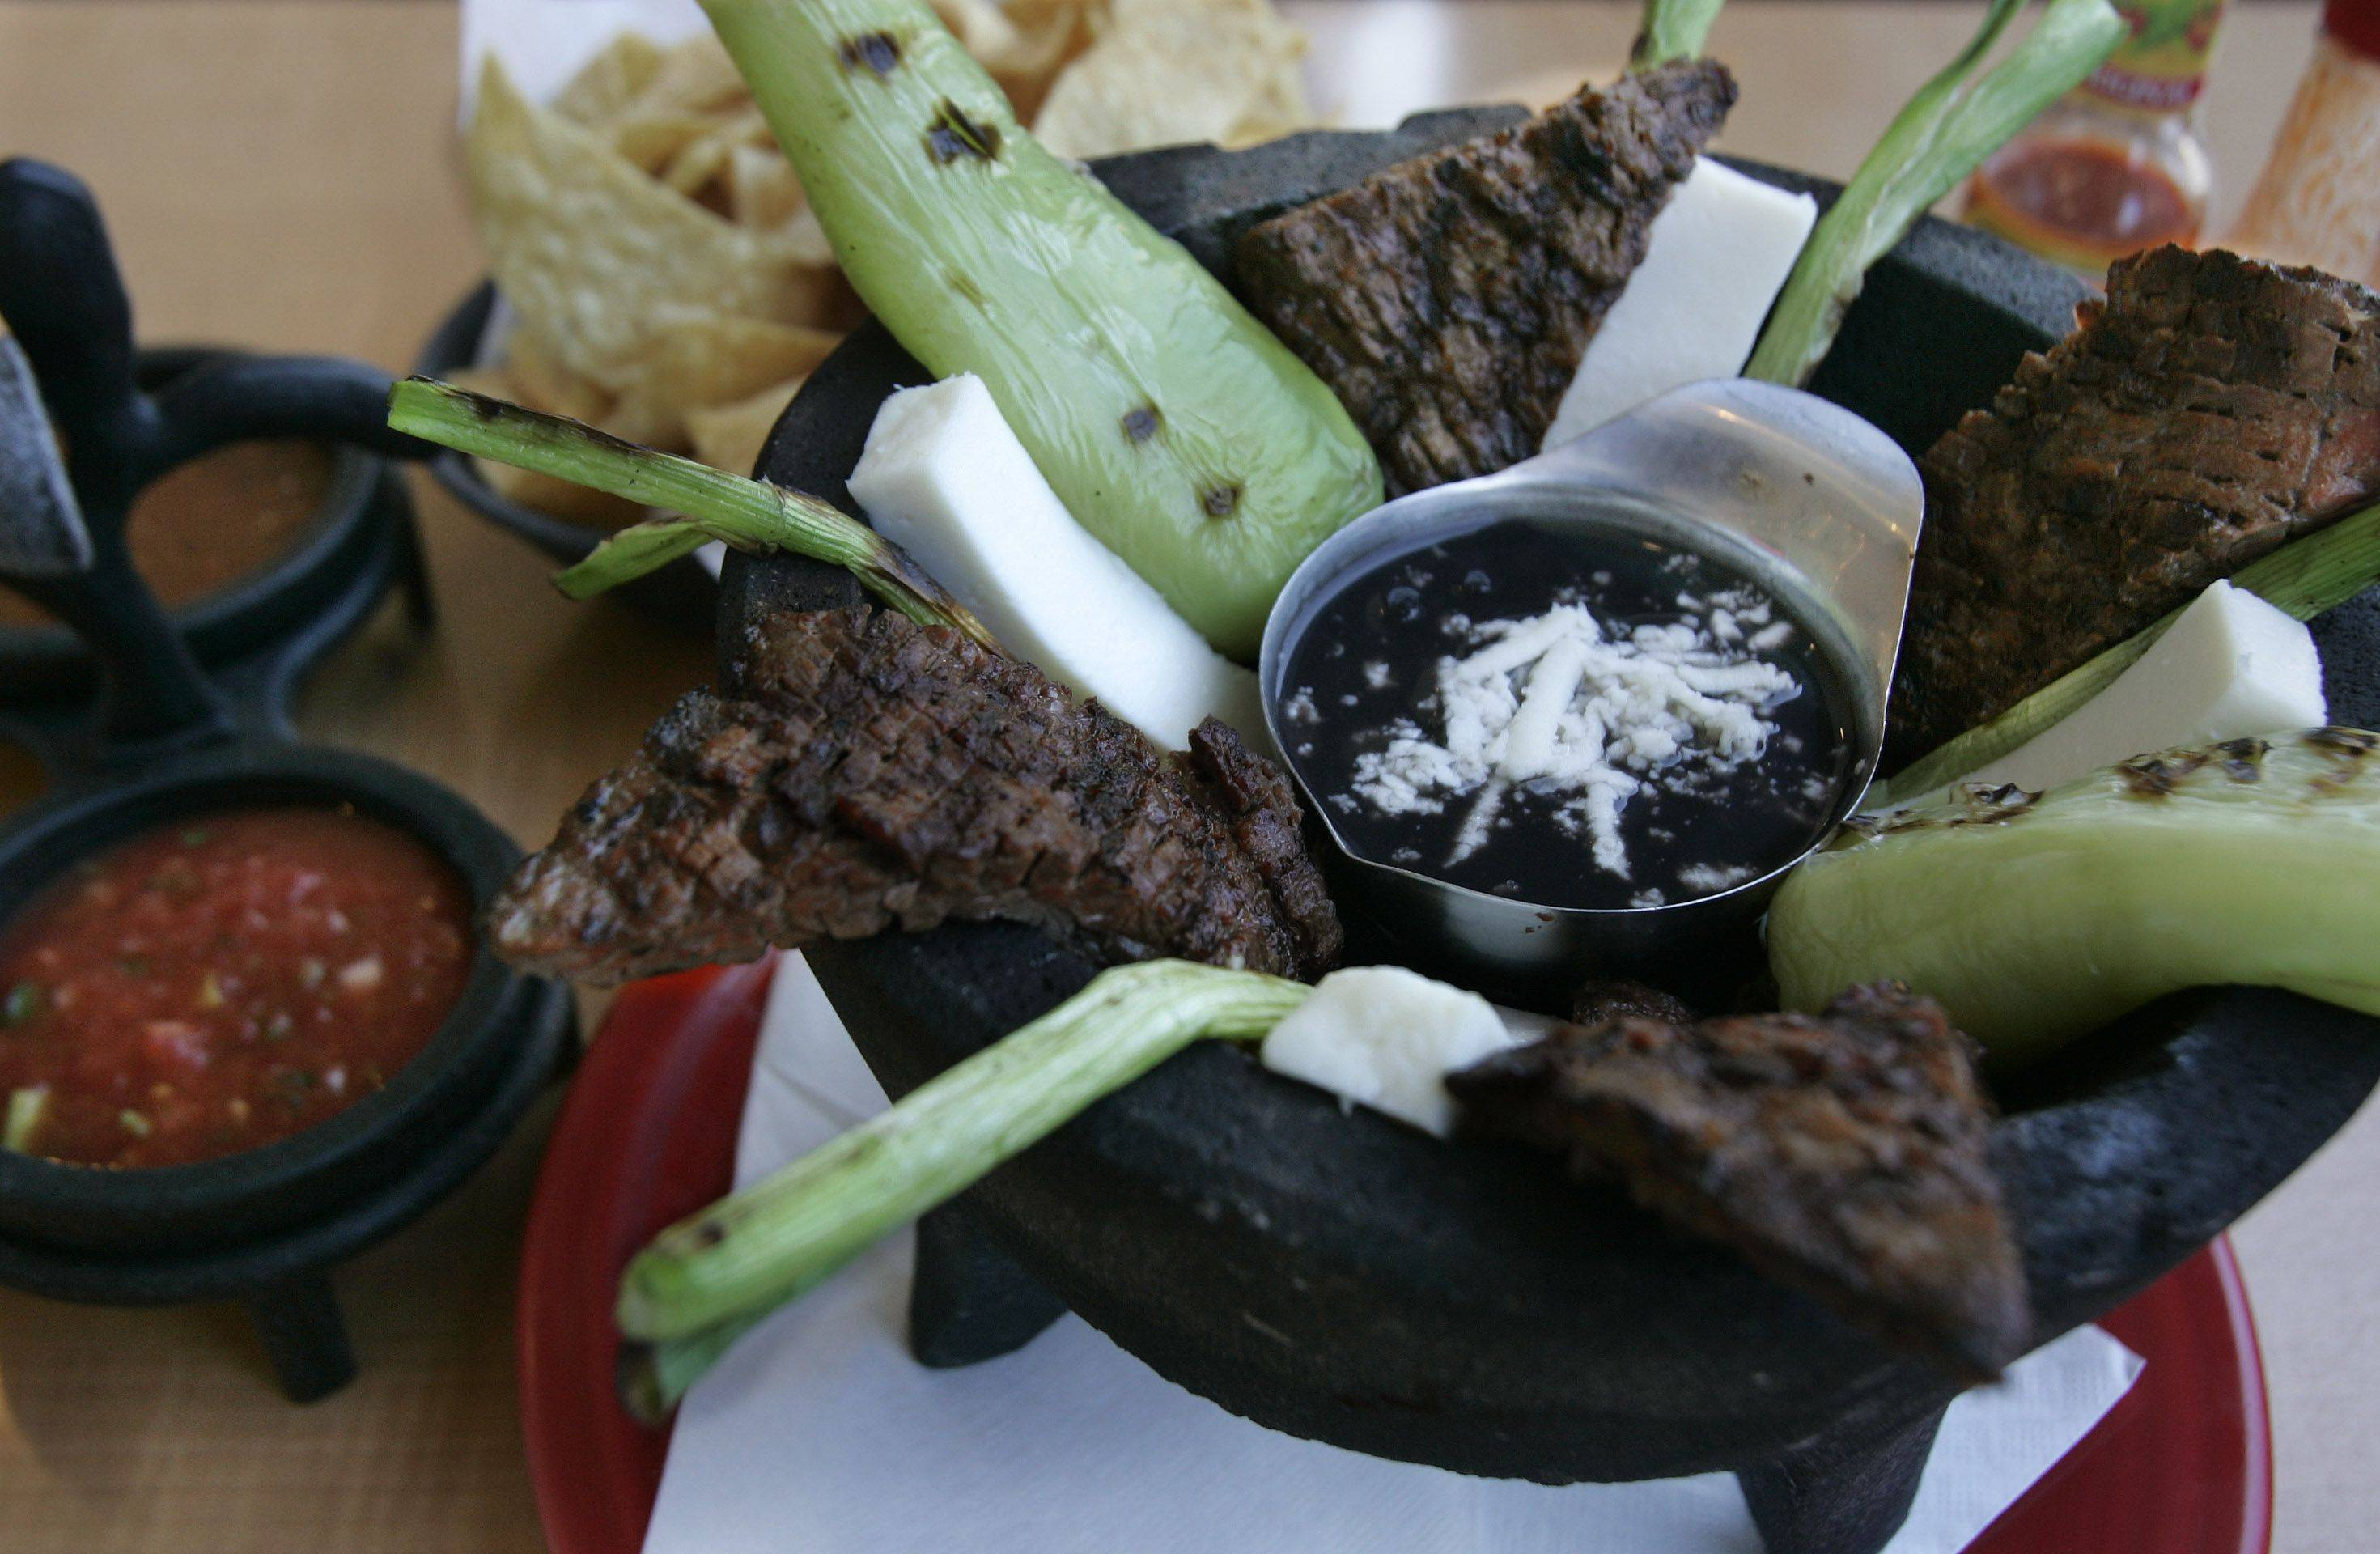 Molcajete -- skirt steak with green onions, banana peppers, queso fresco and black beans -- is one of the options at Casa Bonita in Libertyville.